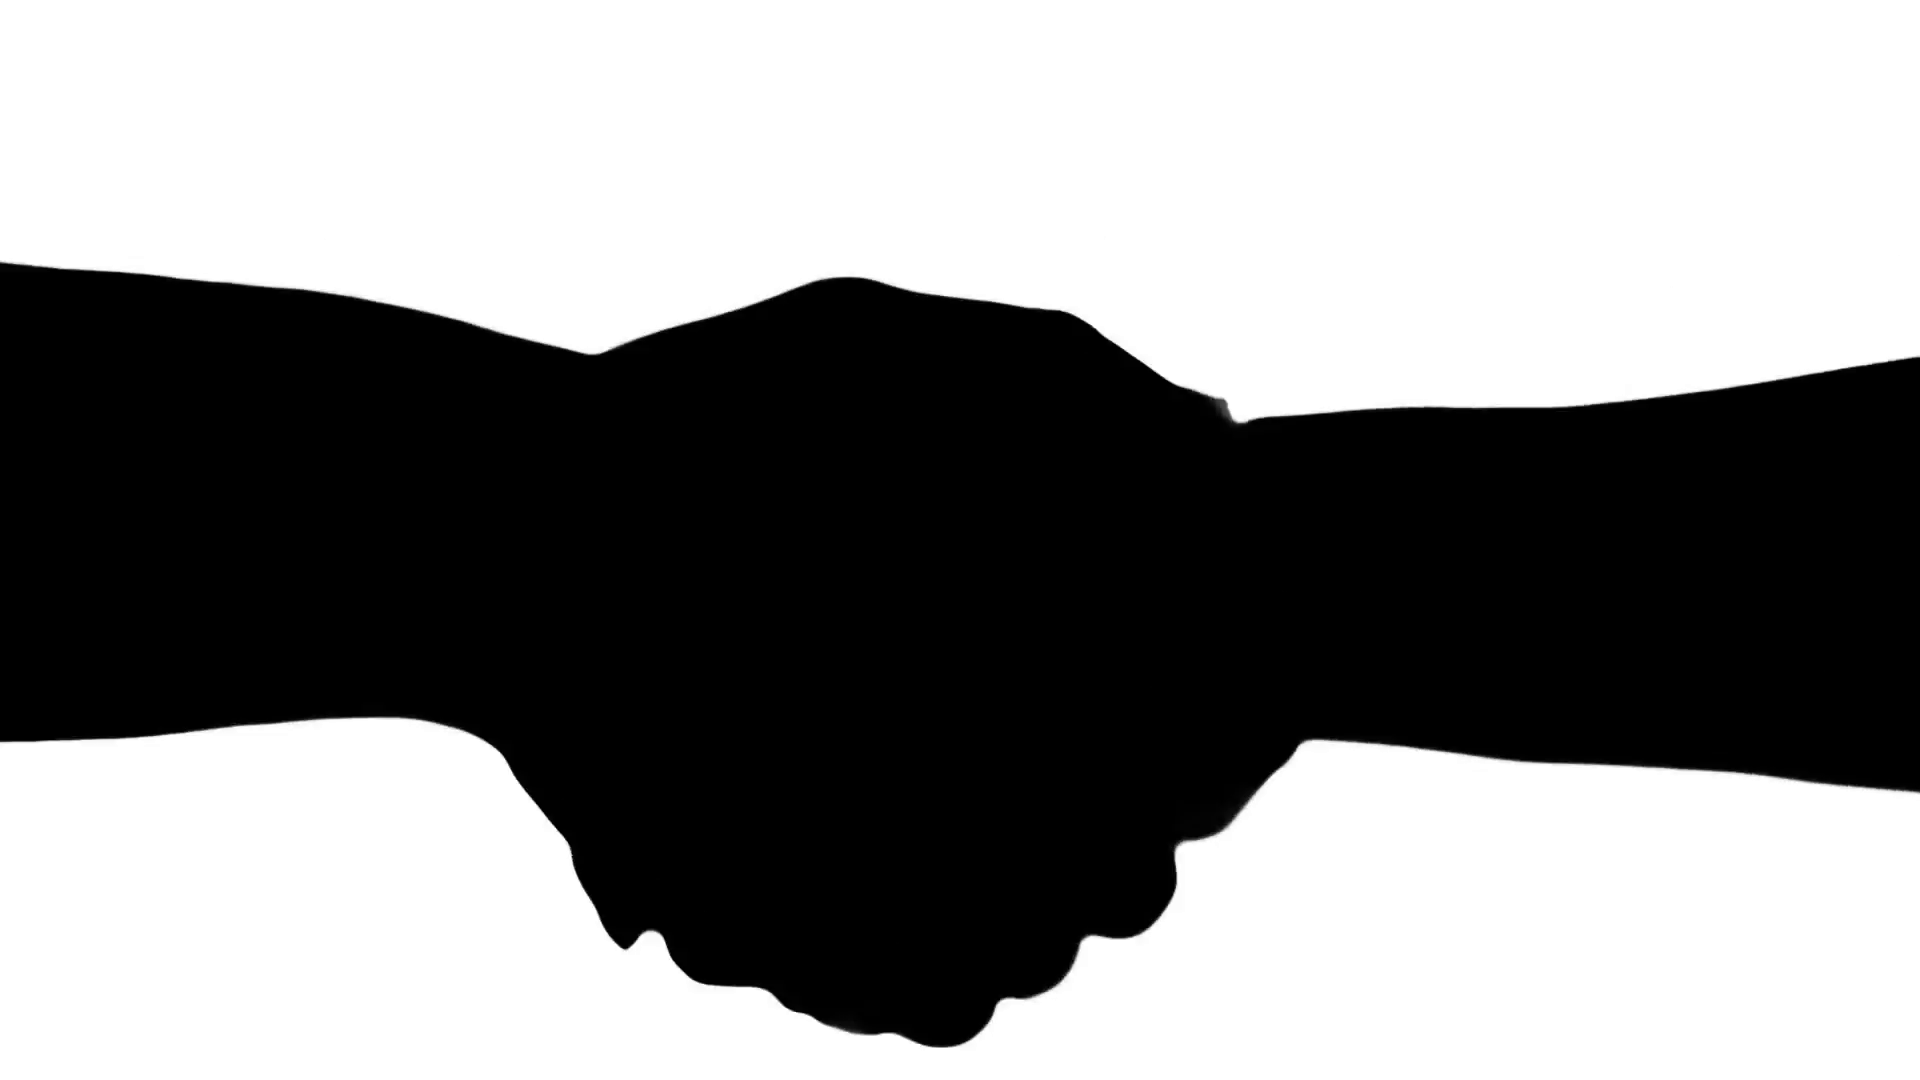 1920x1080 Shaking Hands Of Two People, Silhouette Isolated On White. Stock